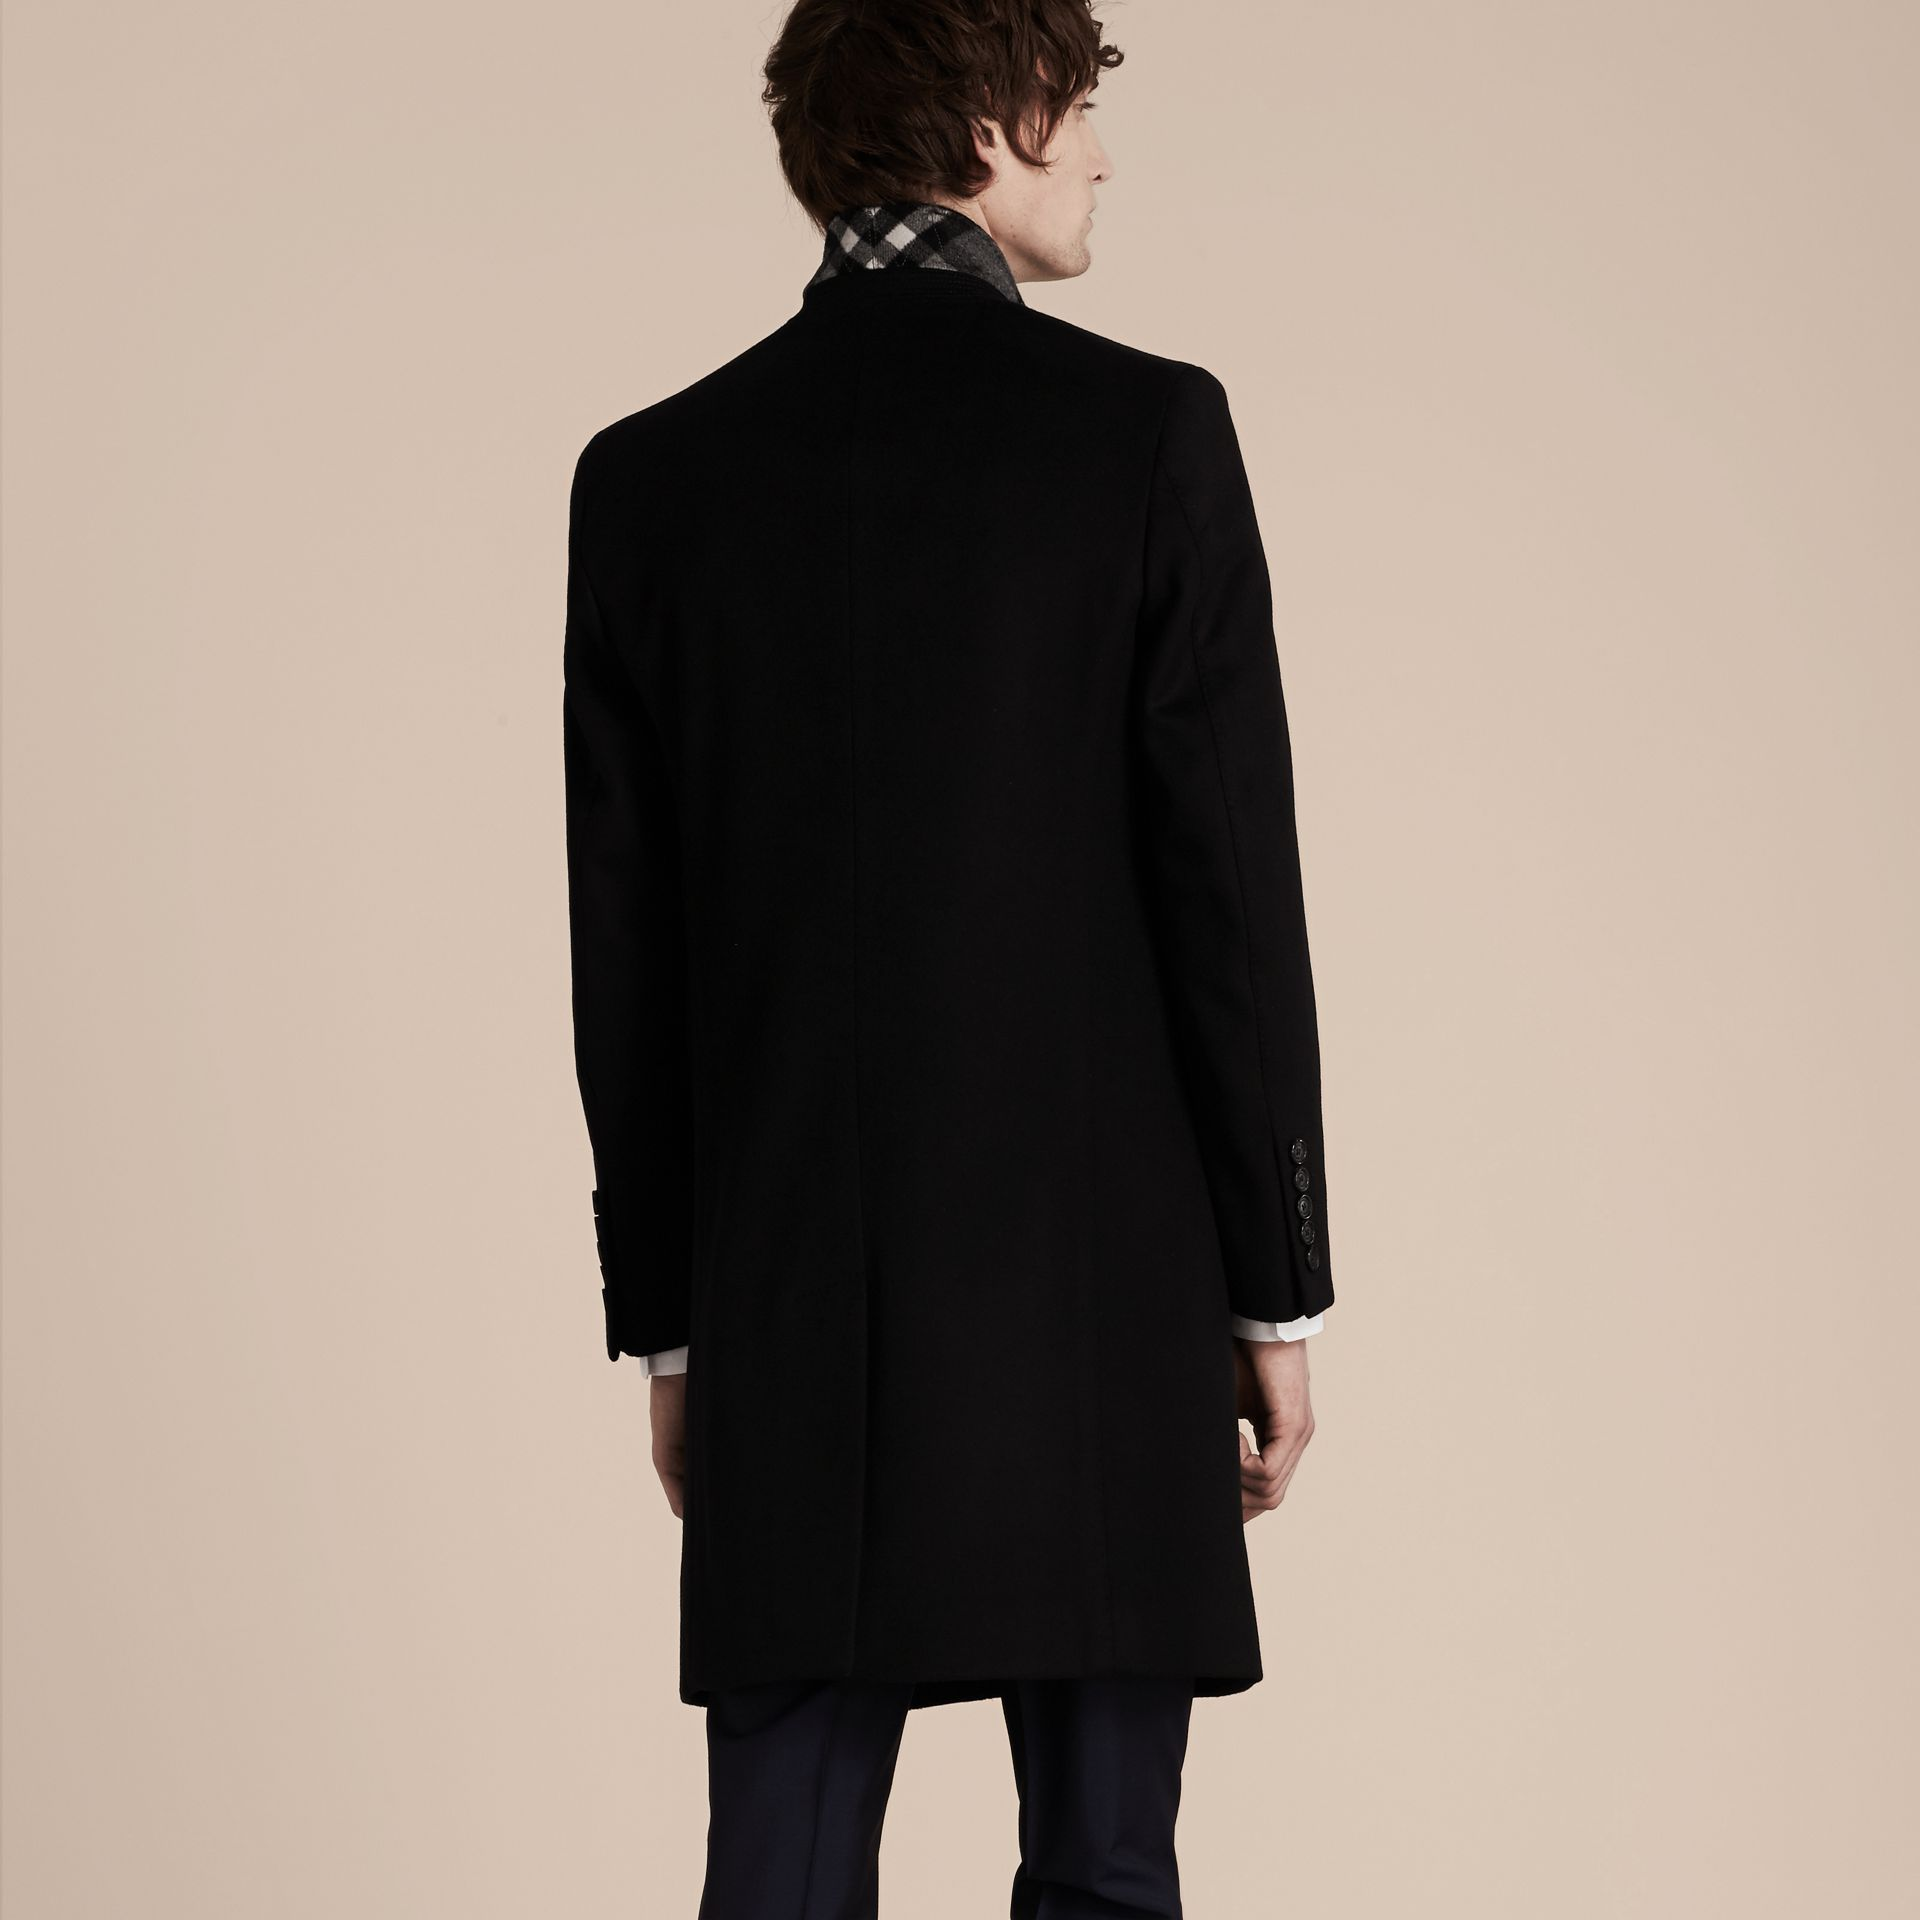 Black Wool Cashmere Tailored Coat Black - gallery image 3